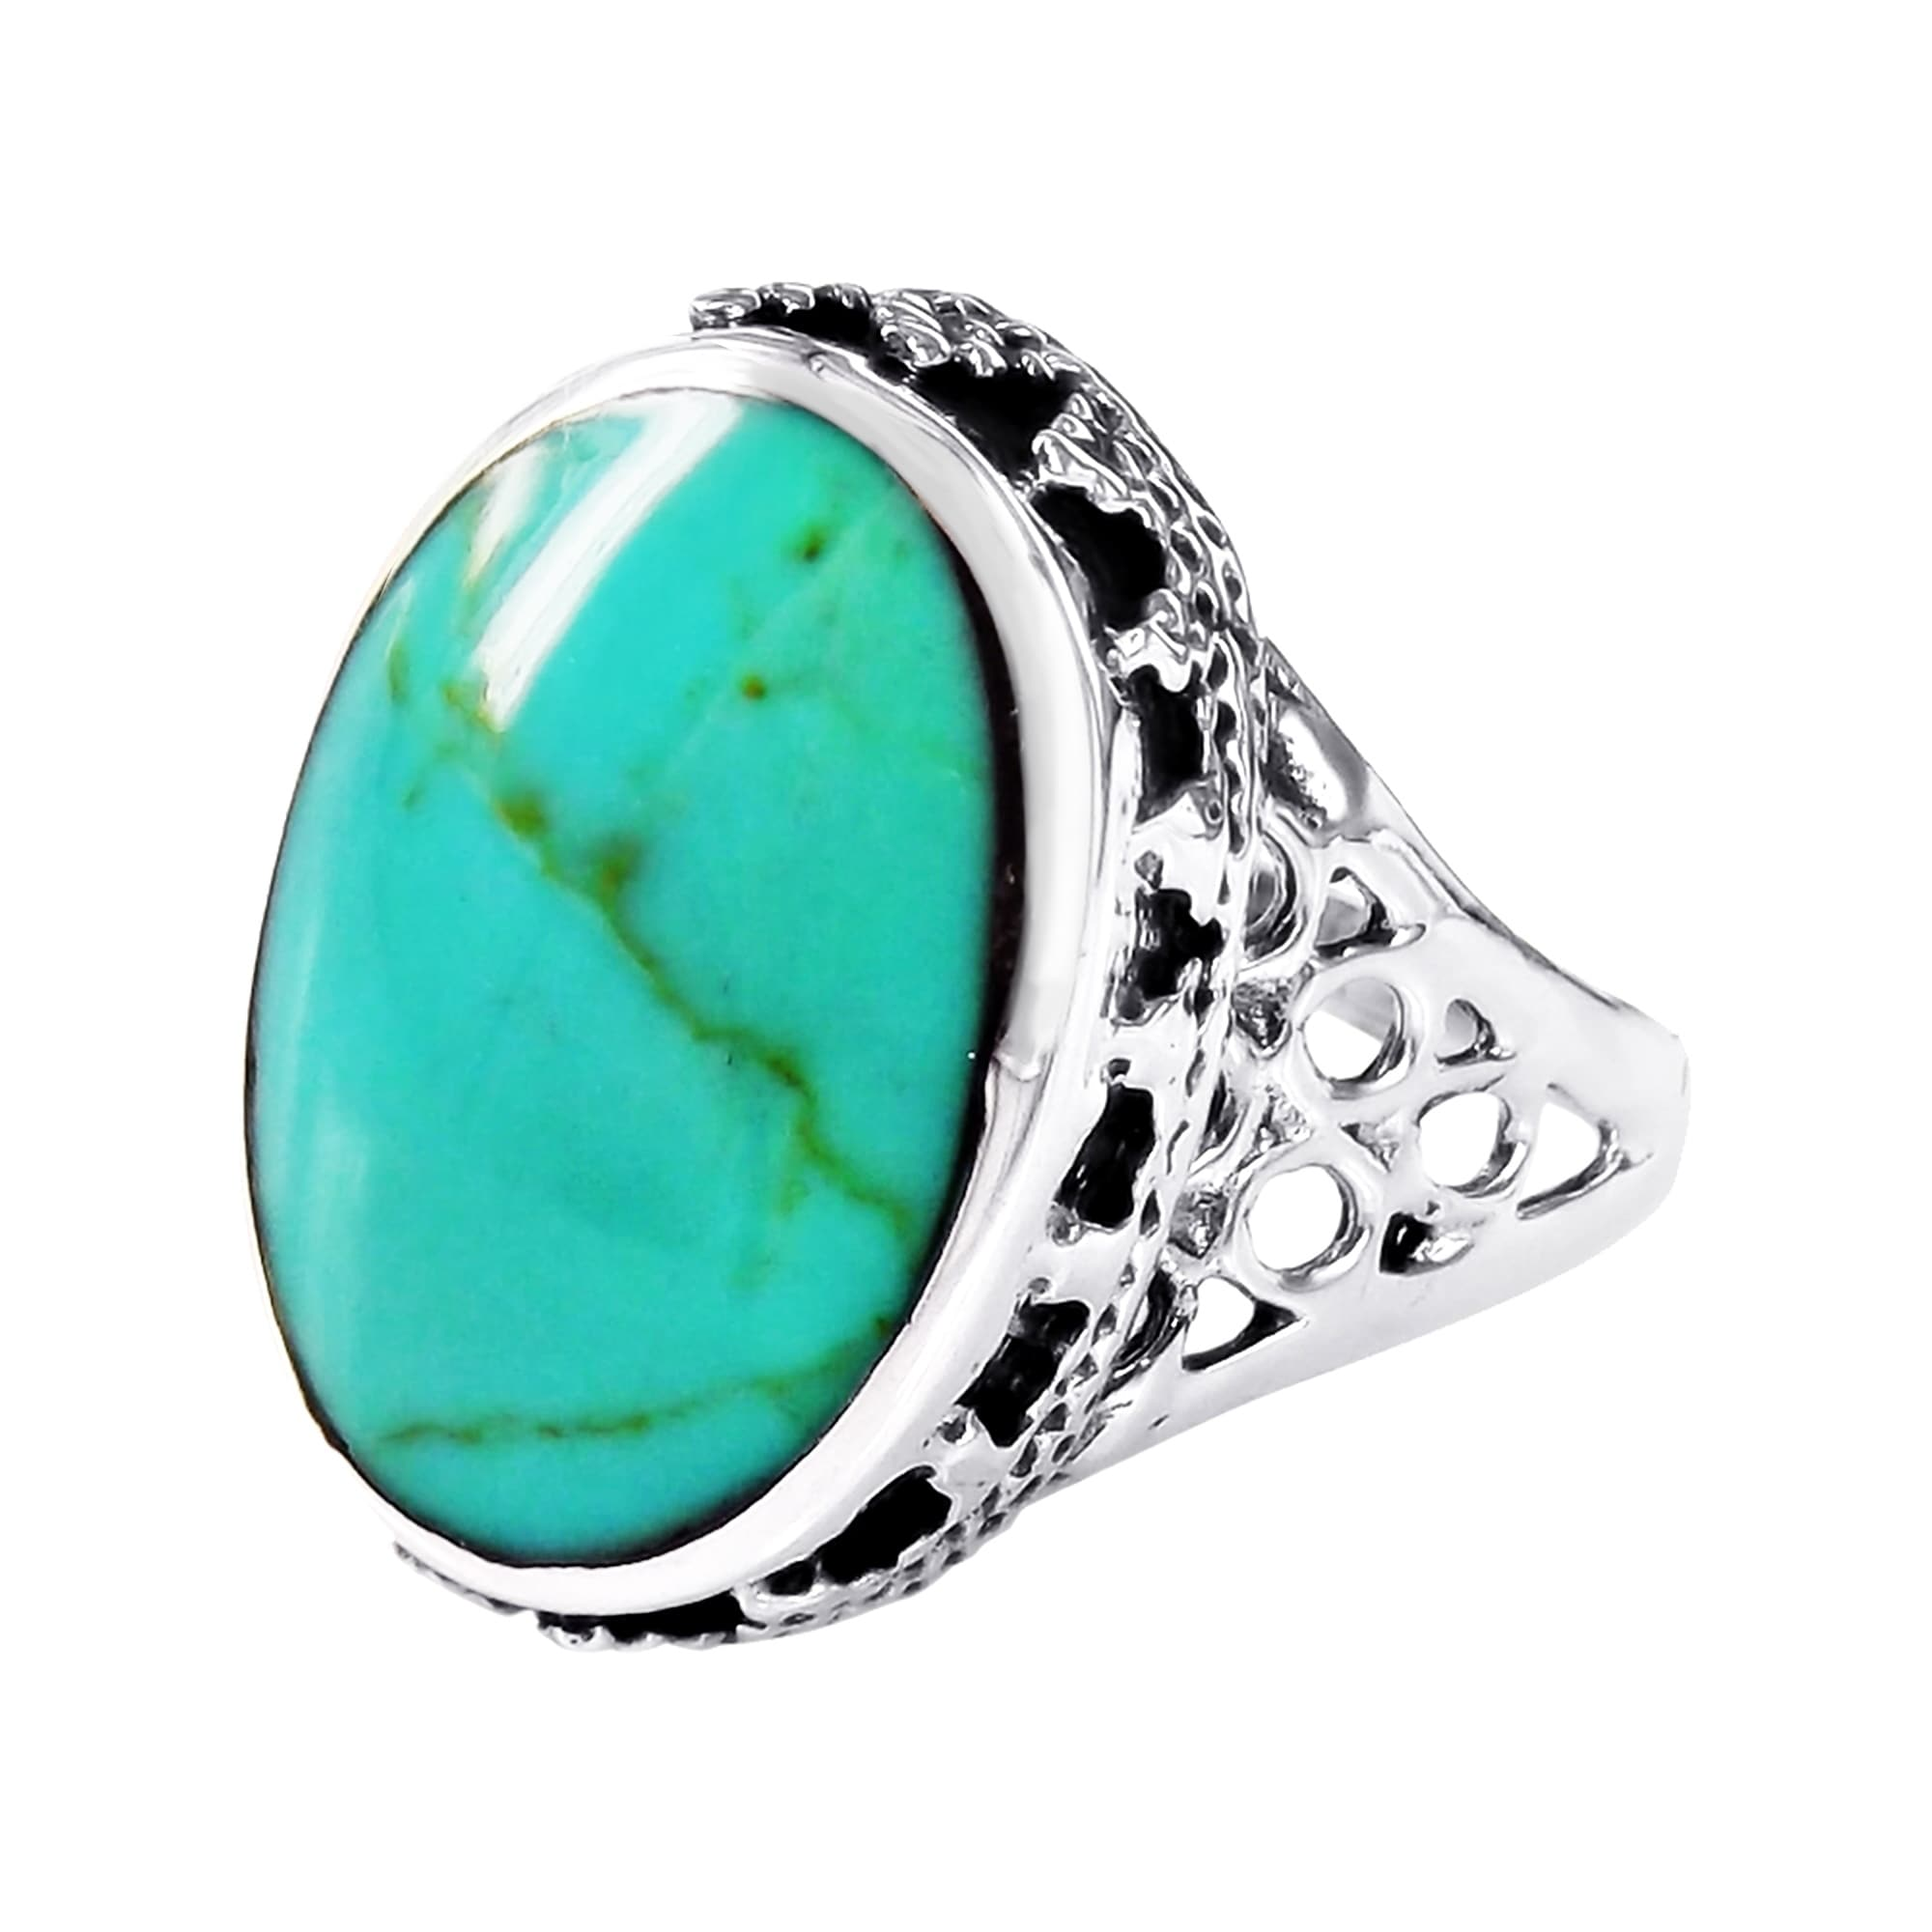 Turquoise Fashion Jewelry Store | Find Great Jewelry Deals Shopping ...